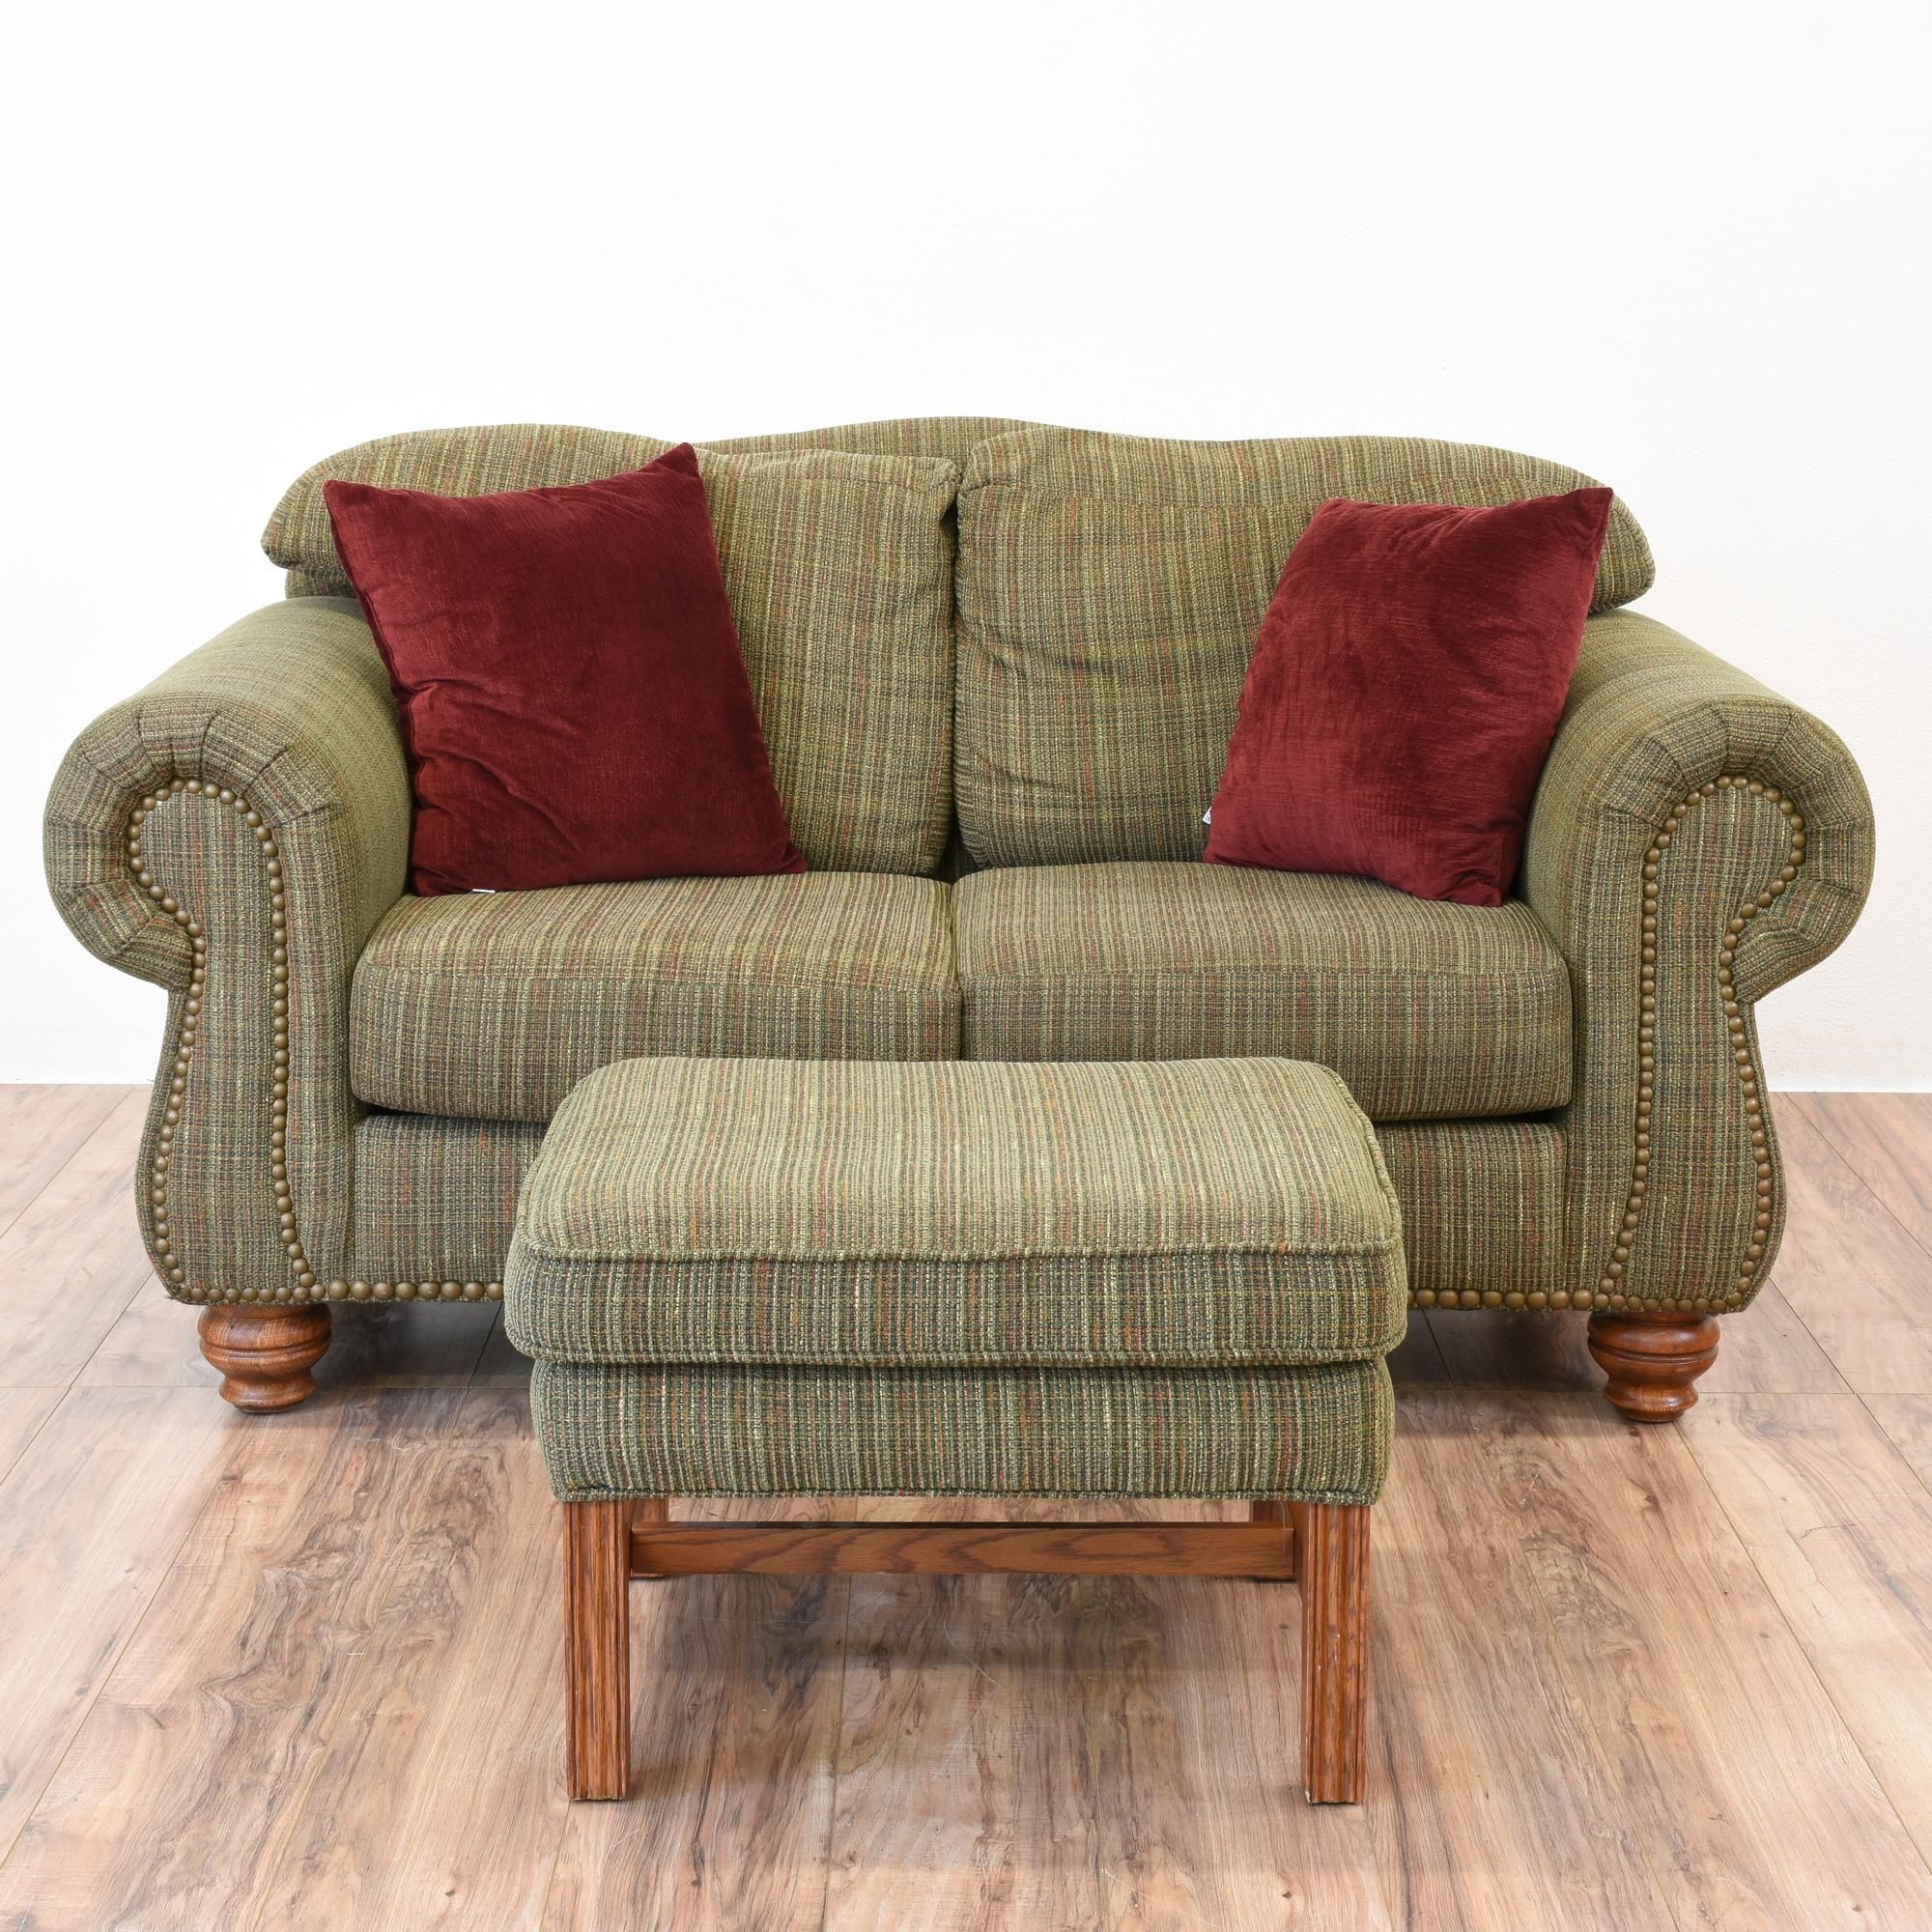 This loveseat and ottoman are upholstered in a durable for Small cream sofa